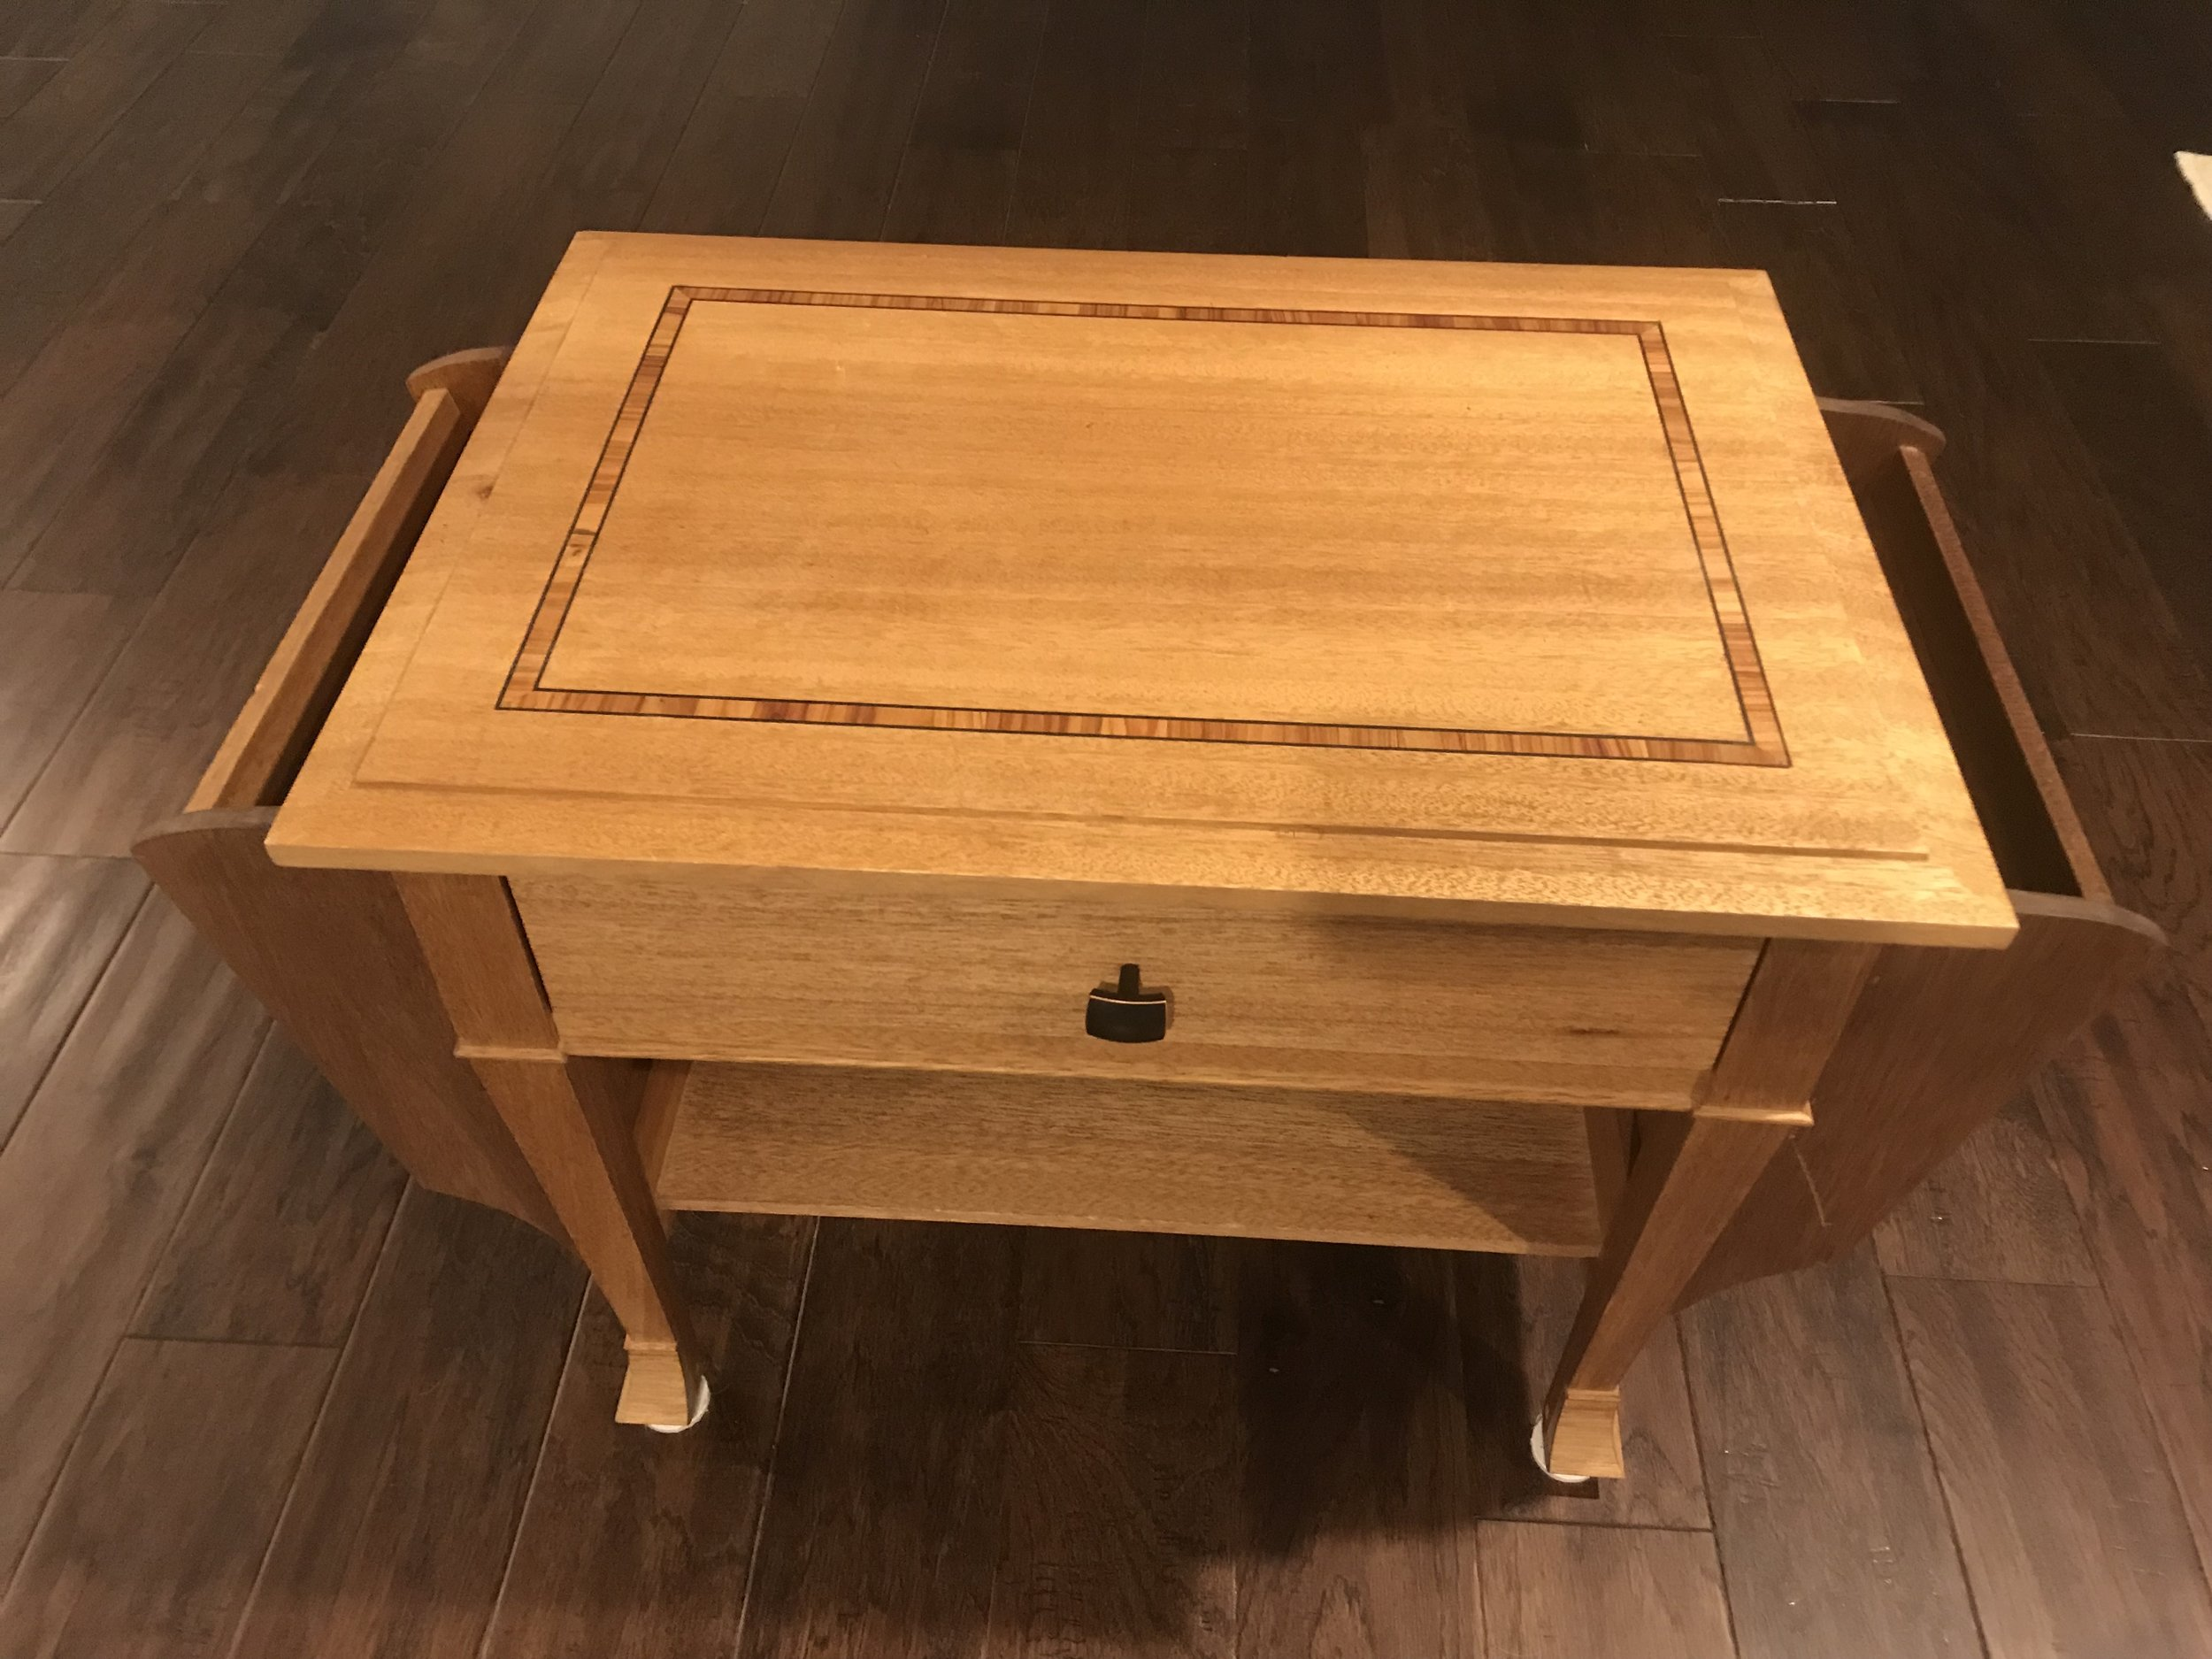 A Table I Made for my Grandmother!